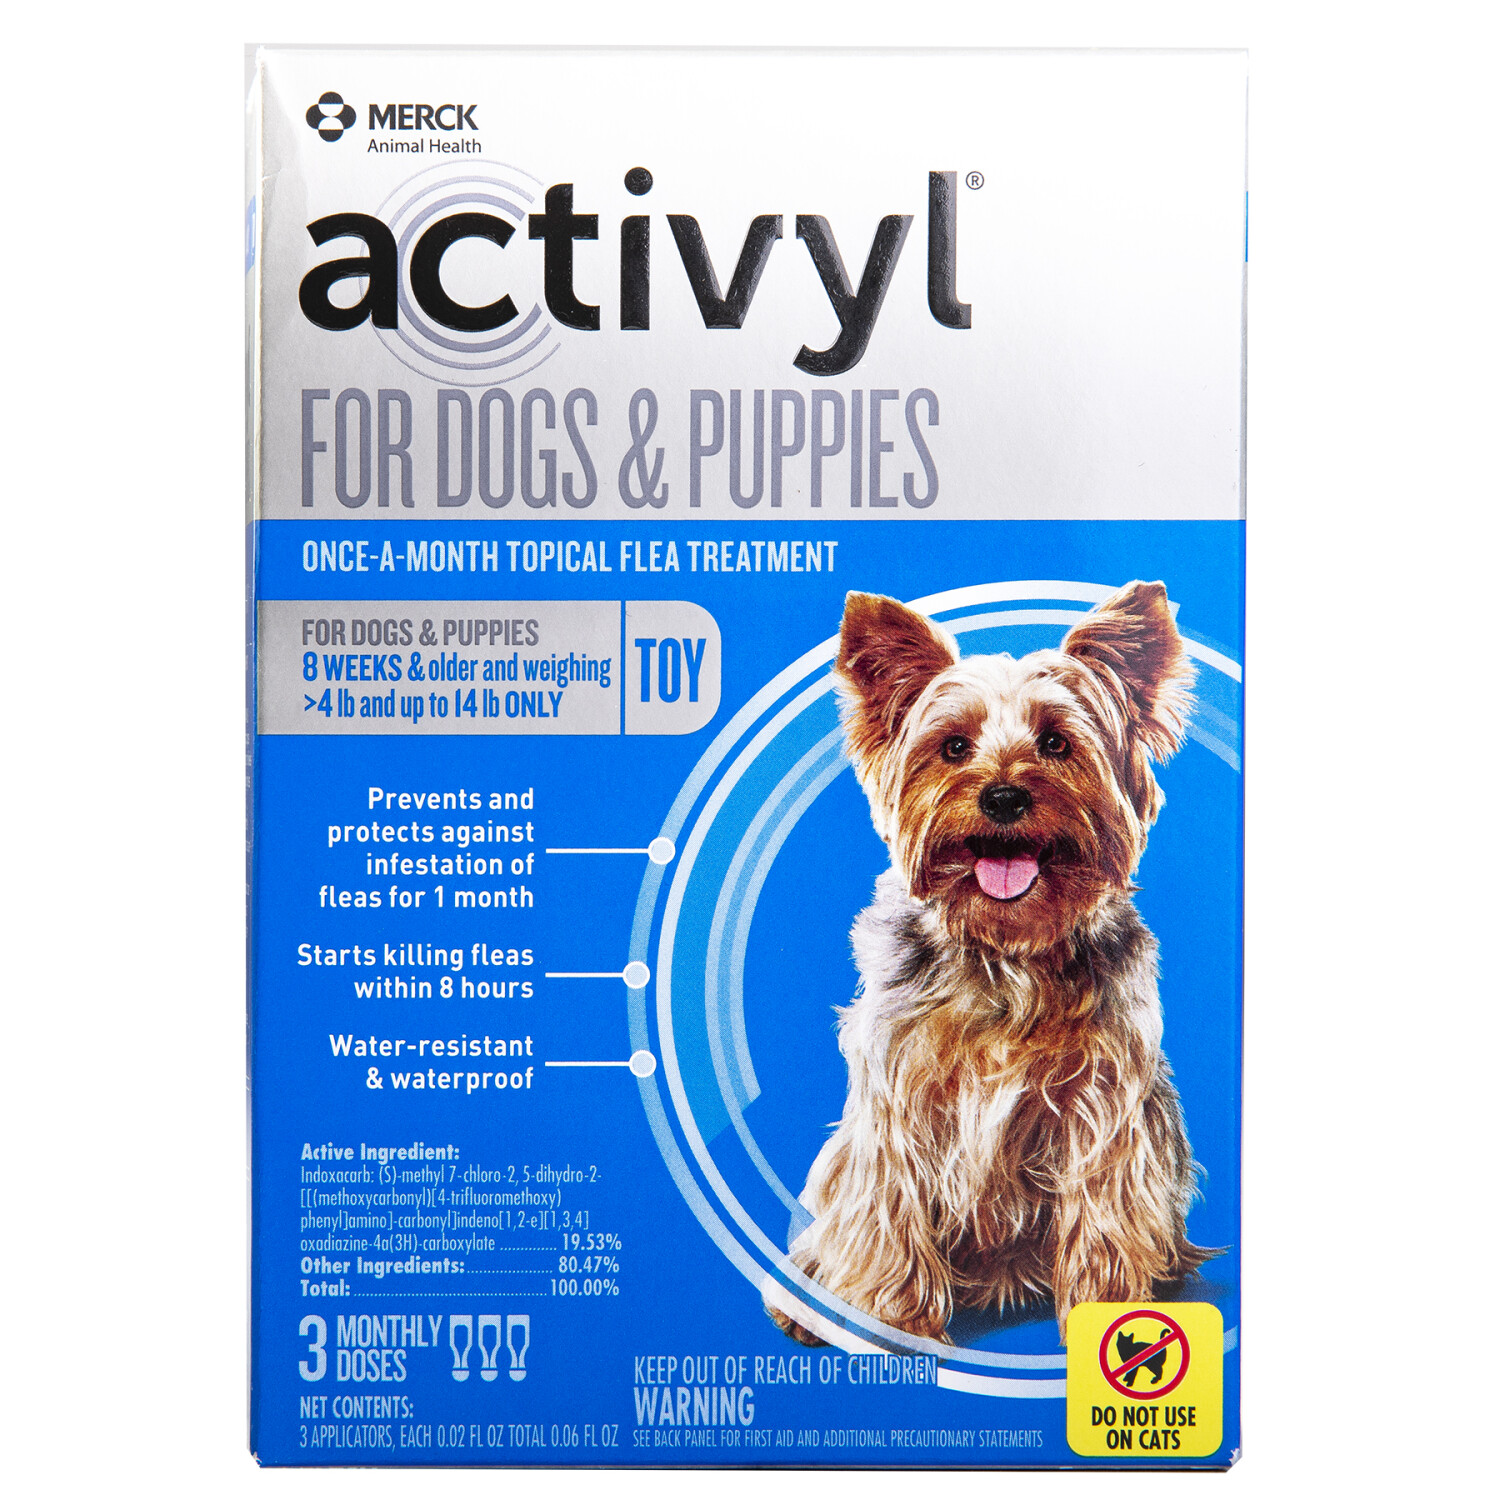 Merck Activl Flea Treatment Once-a-Month Topical 3 doses TOY dogs - Blue